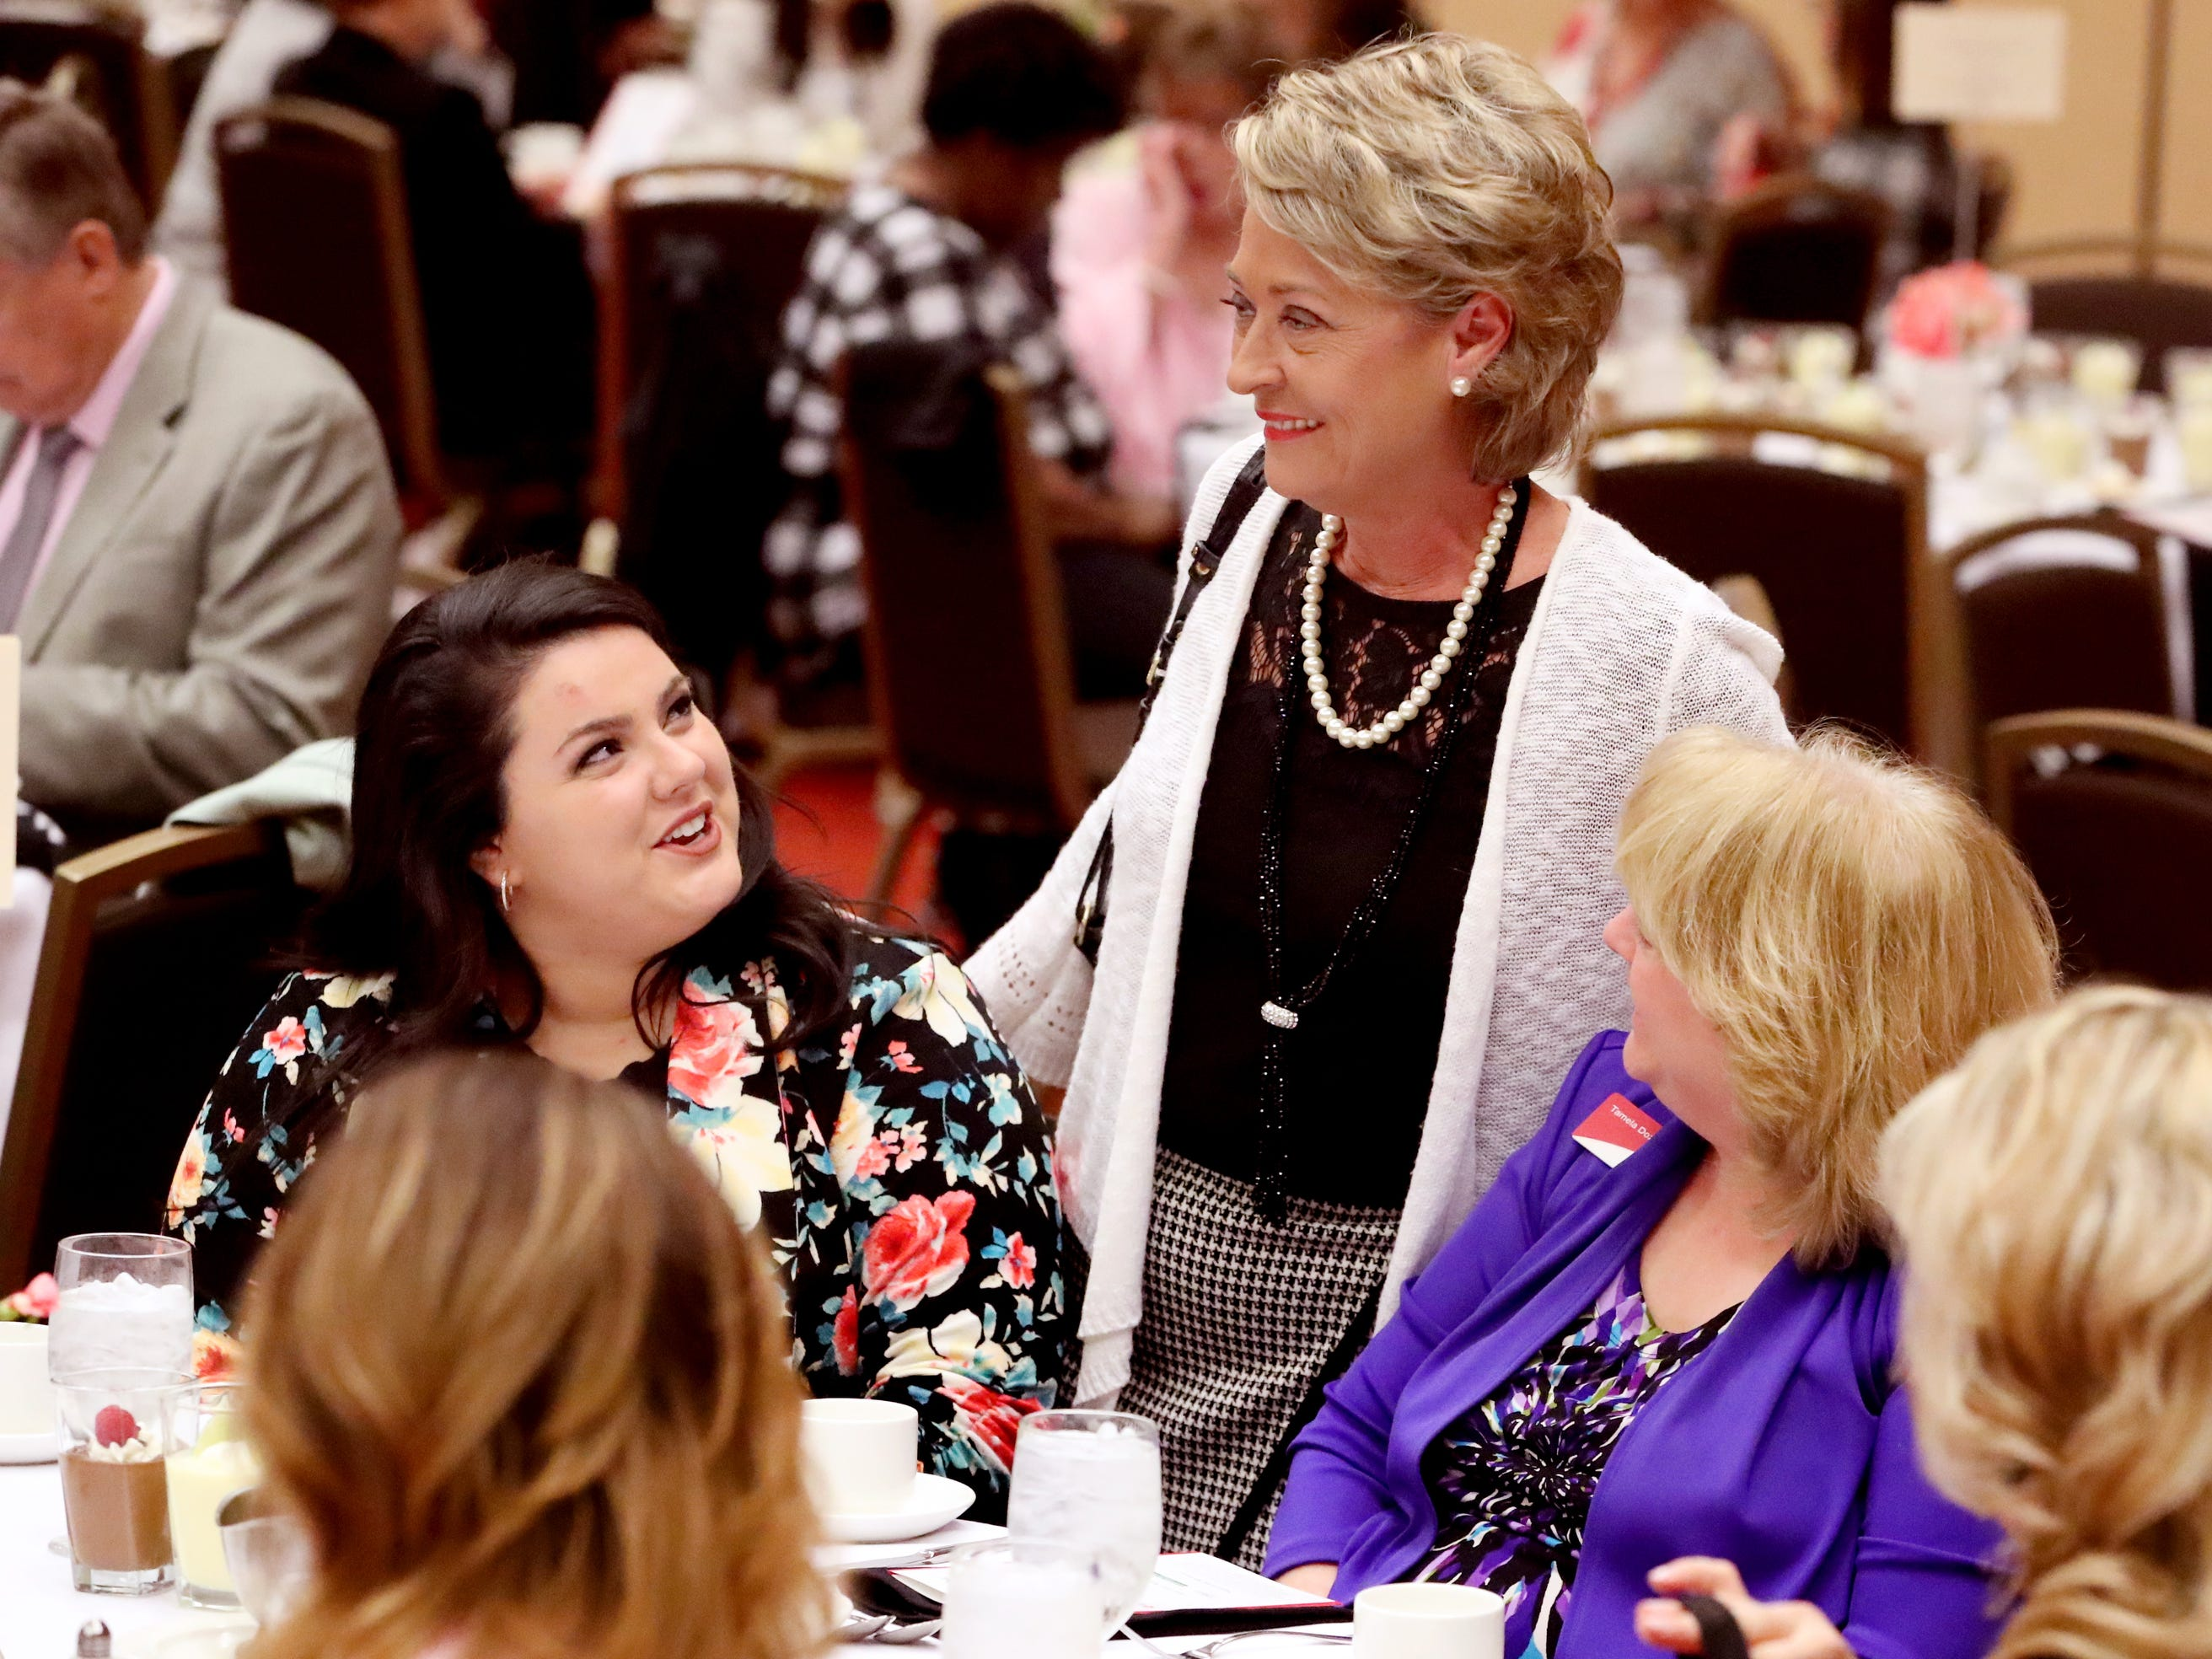 Natalie Hughes, center, talks with Carley McNeal, left, and Tamela Dozier, right at Murfreesboro Magazine's 2019 Women in Business Luncheon on Tuesday, March 12, 2019, at the Embassy Suites Murfreesboro.